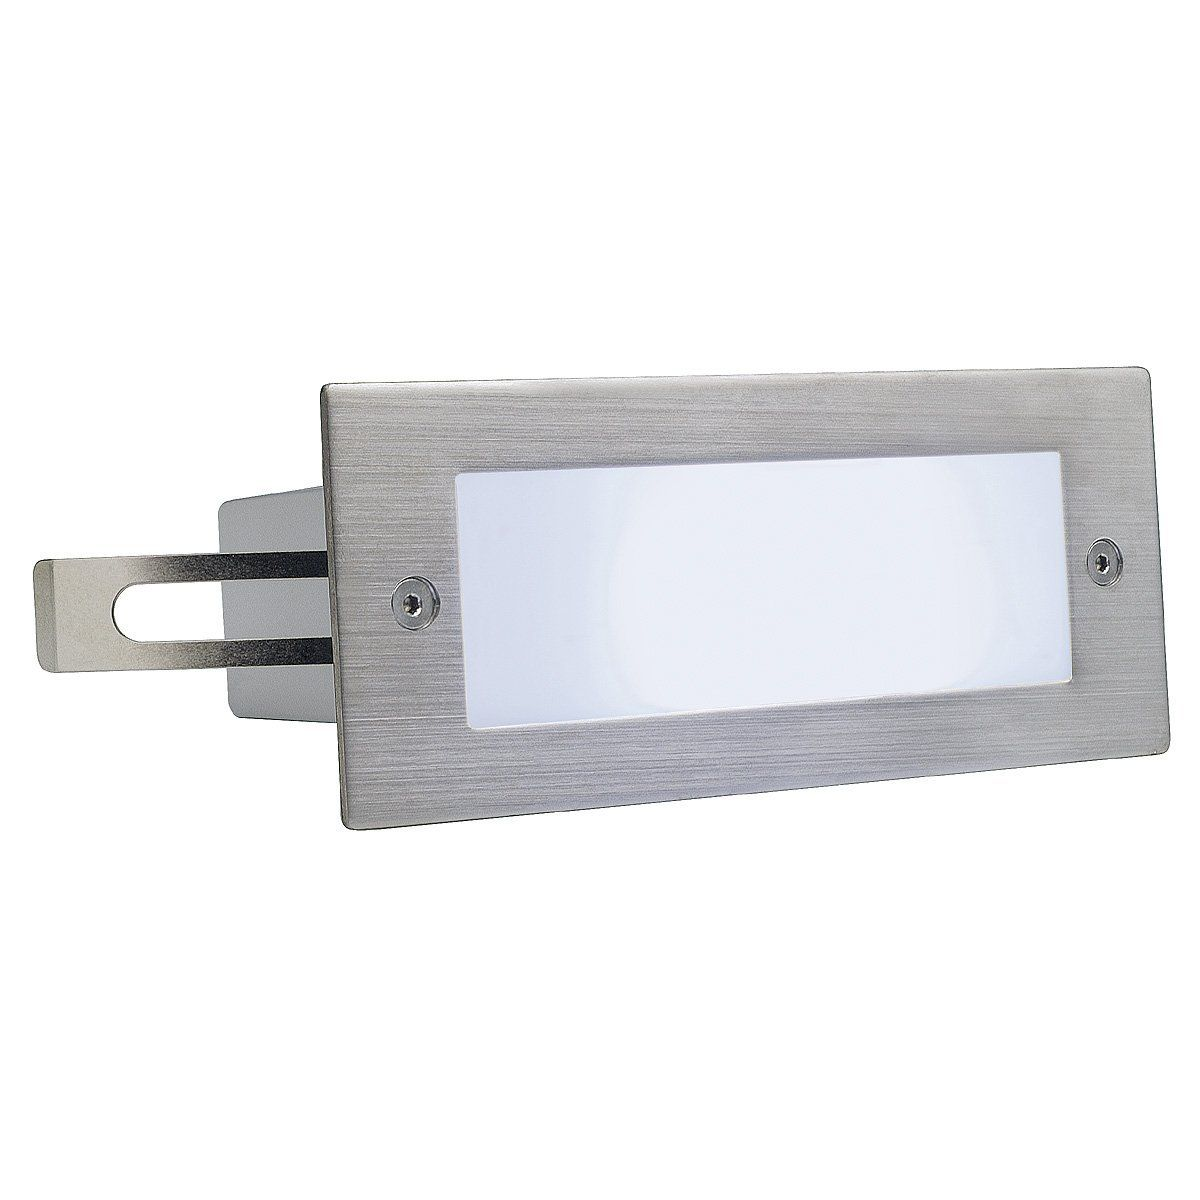 Slv 230231 Brick Led 16 Stainless Steel 304 Wall Light Brushed 1w White Ip44 Steel Silver Grey Recessed Wall Lights Wall Lamp Stainless Steel 304